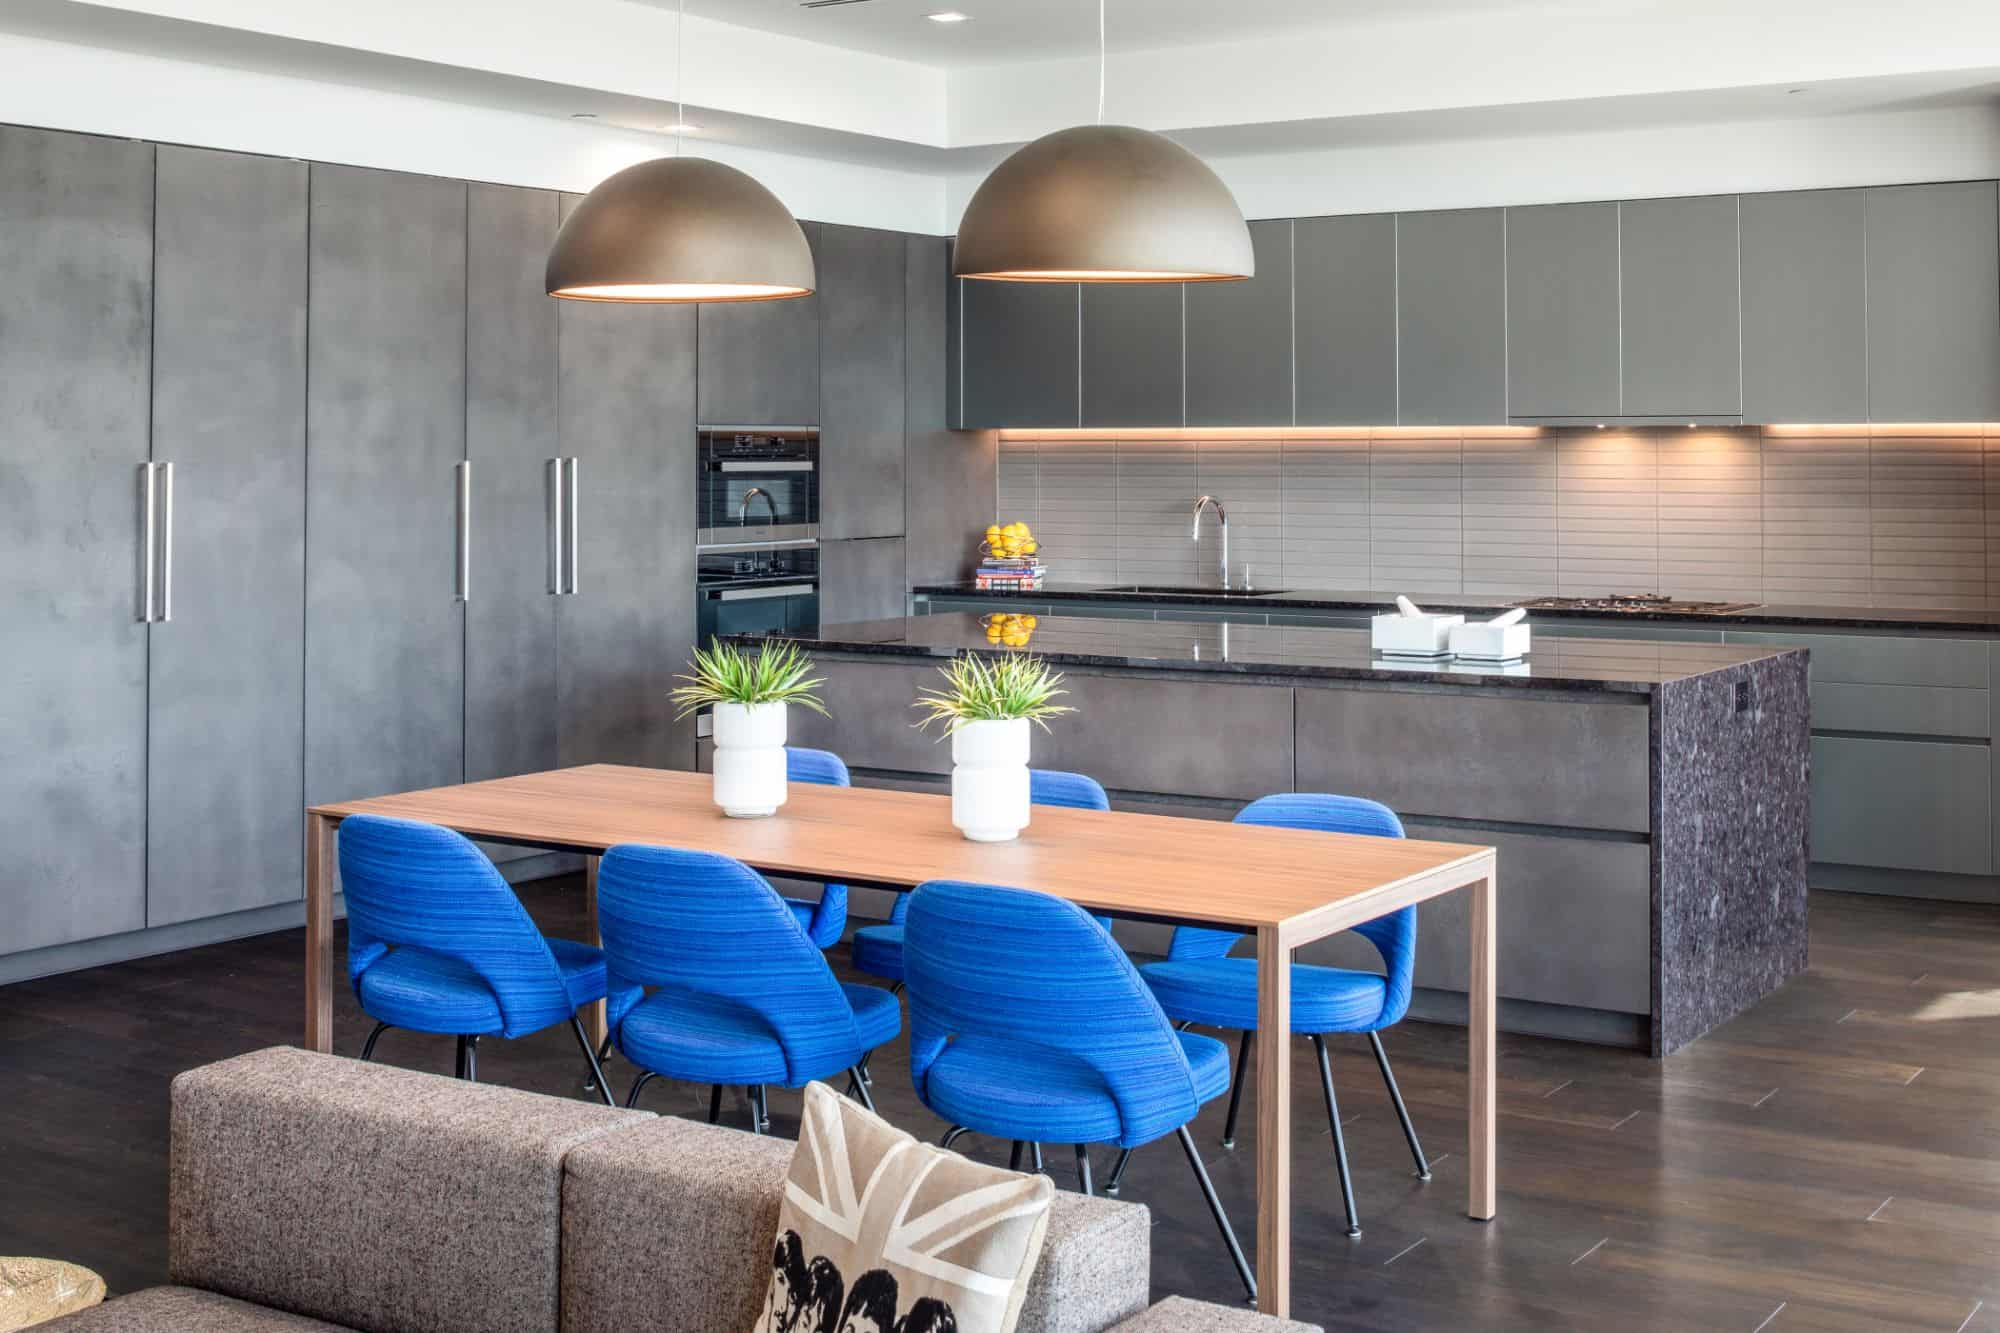 mid to dark tones of gray on gray in this kitchen by eggersmann are beautifully accented by the bright peacock blue custom dining chairs